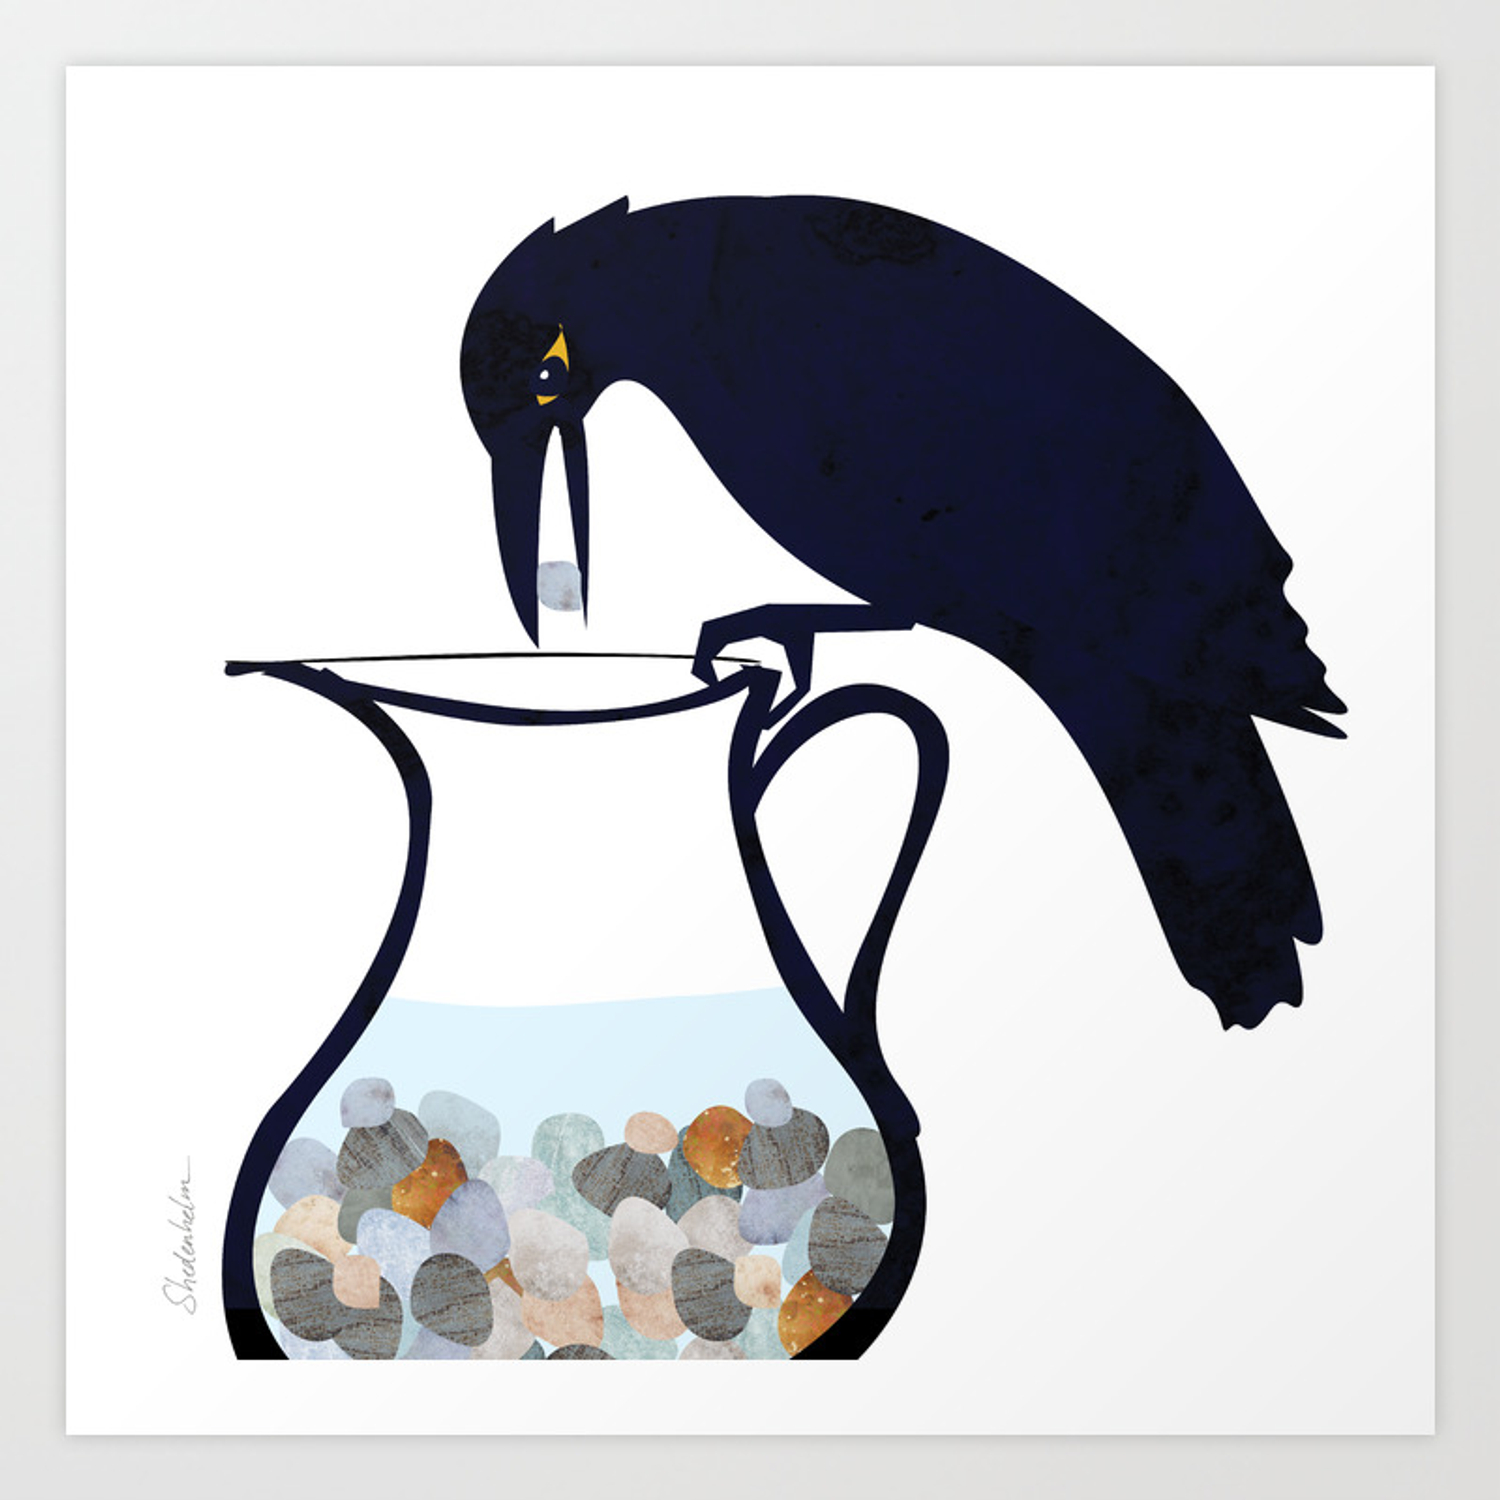 """How the Fable of """"The Crow and the Pitcher"""" Can Increase Your Profits and Cash Flow"""